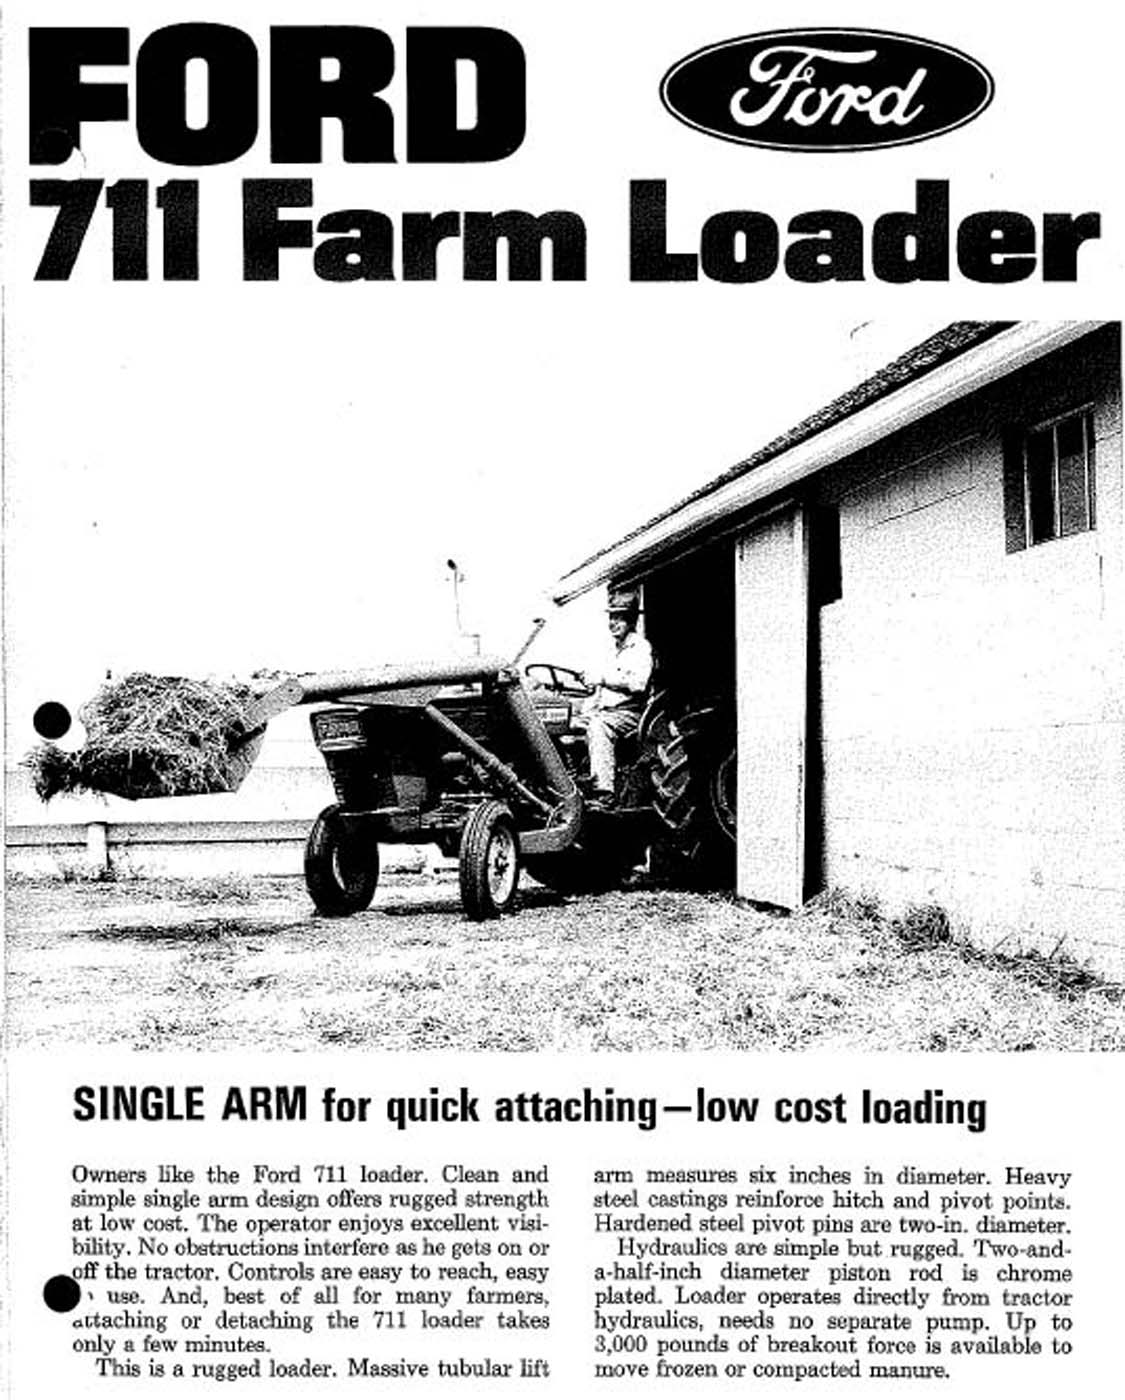 Ford 711 1-arm loader